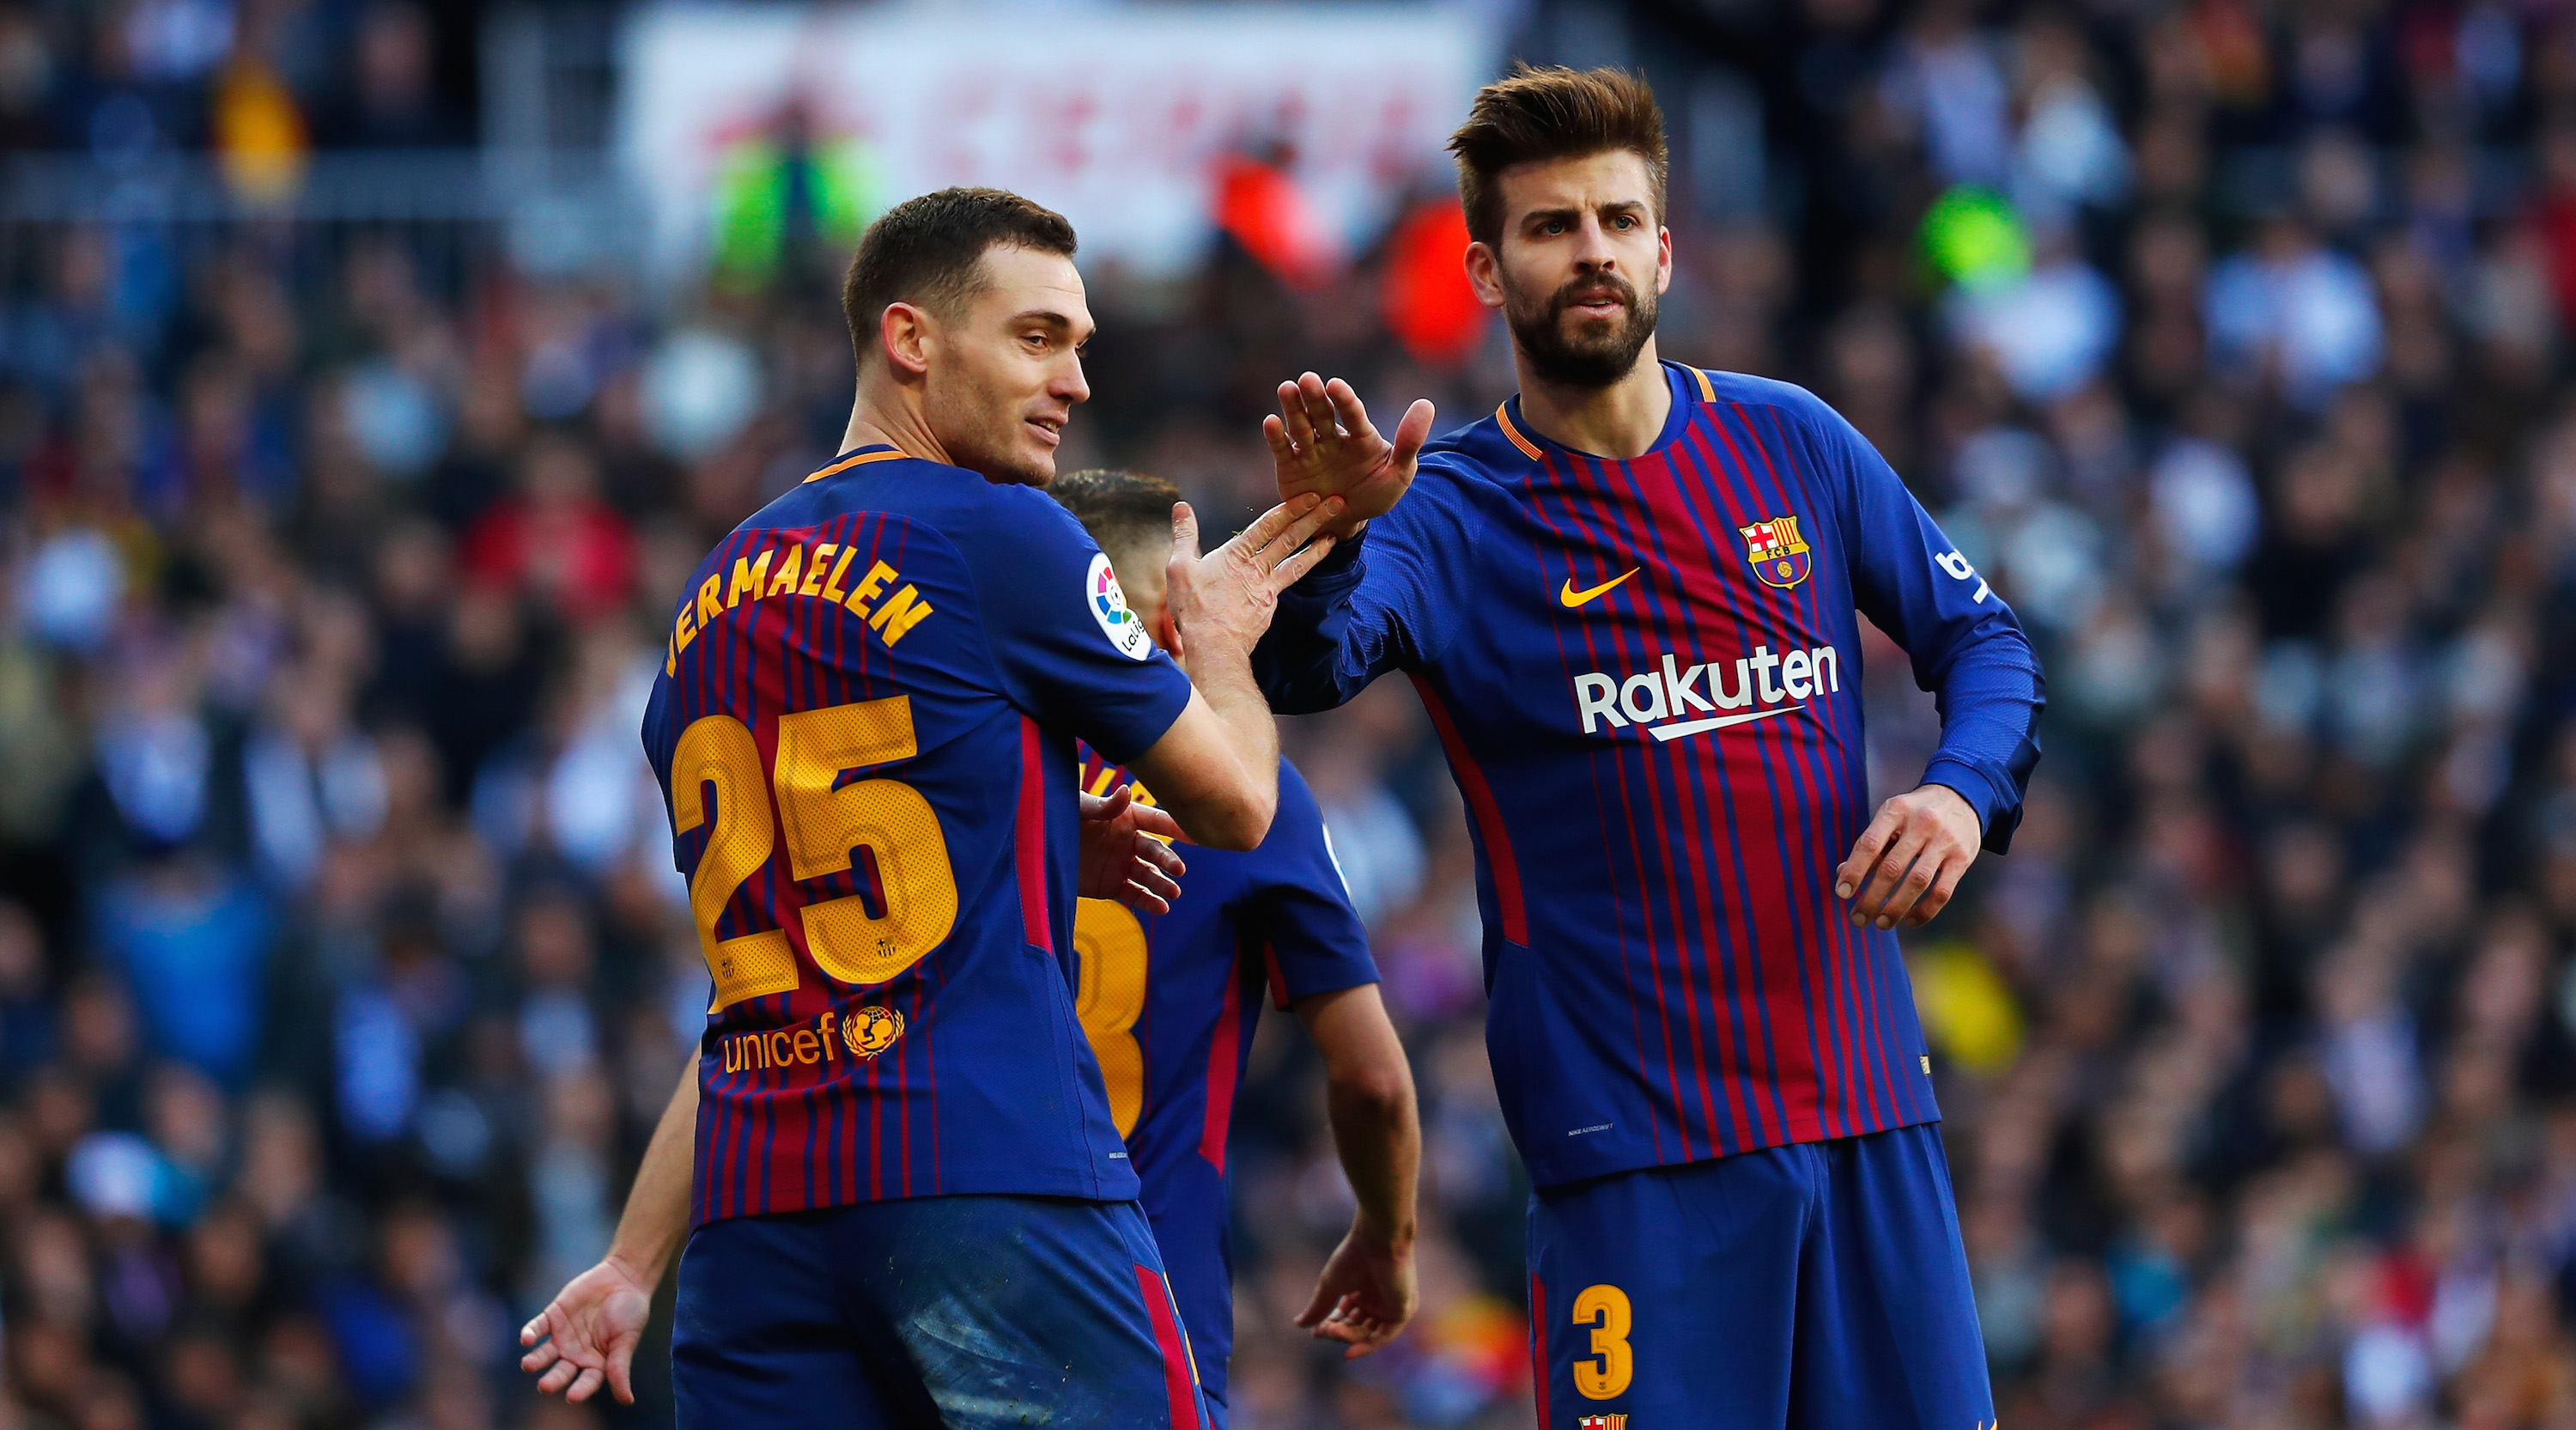 Thomas Vermaelen of Barcelona speaks to teammate Gerard Pique during the La Liga match between Real Madrid and Barcelona at Estadio Santiago Bernabeu on December 23, 2017 in Madrid, Spain. (Photo by Gonzalo Arroyo Moreno/Getty Images)